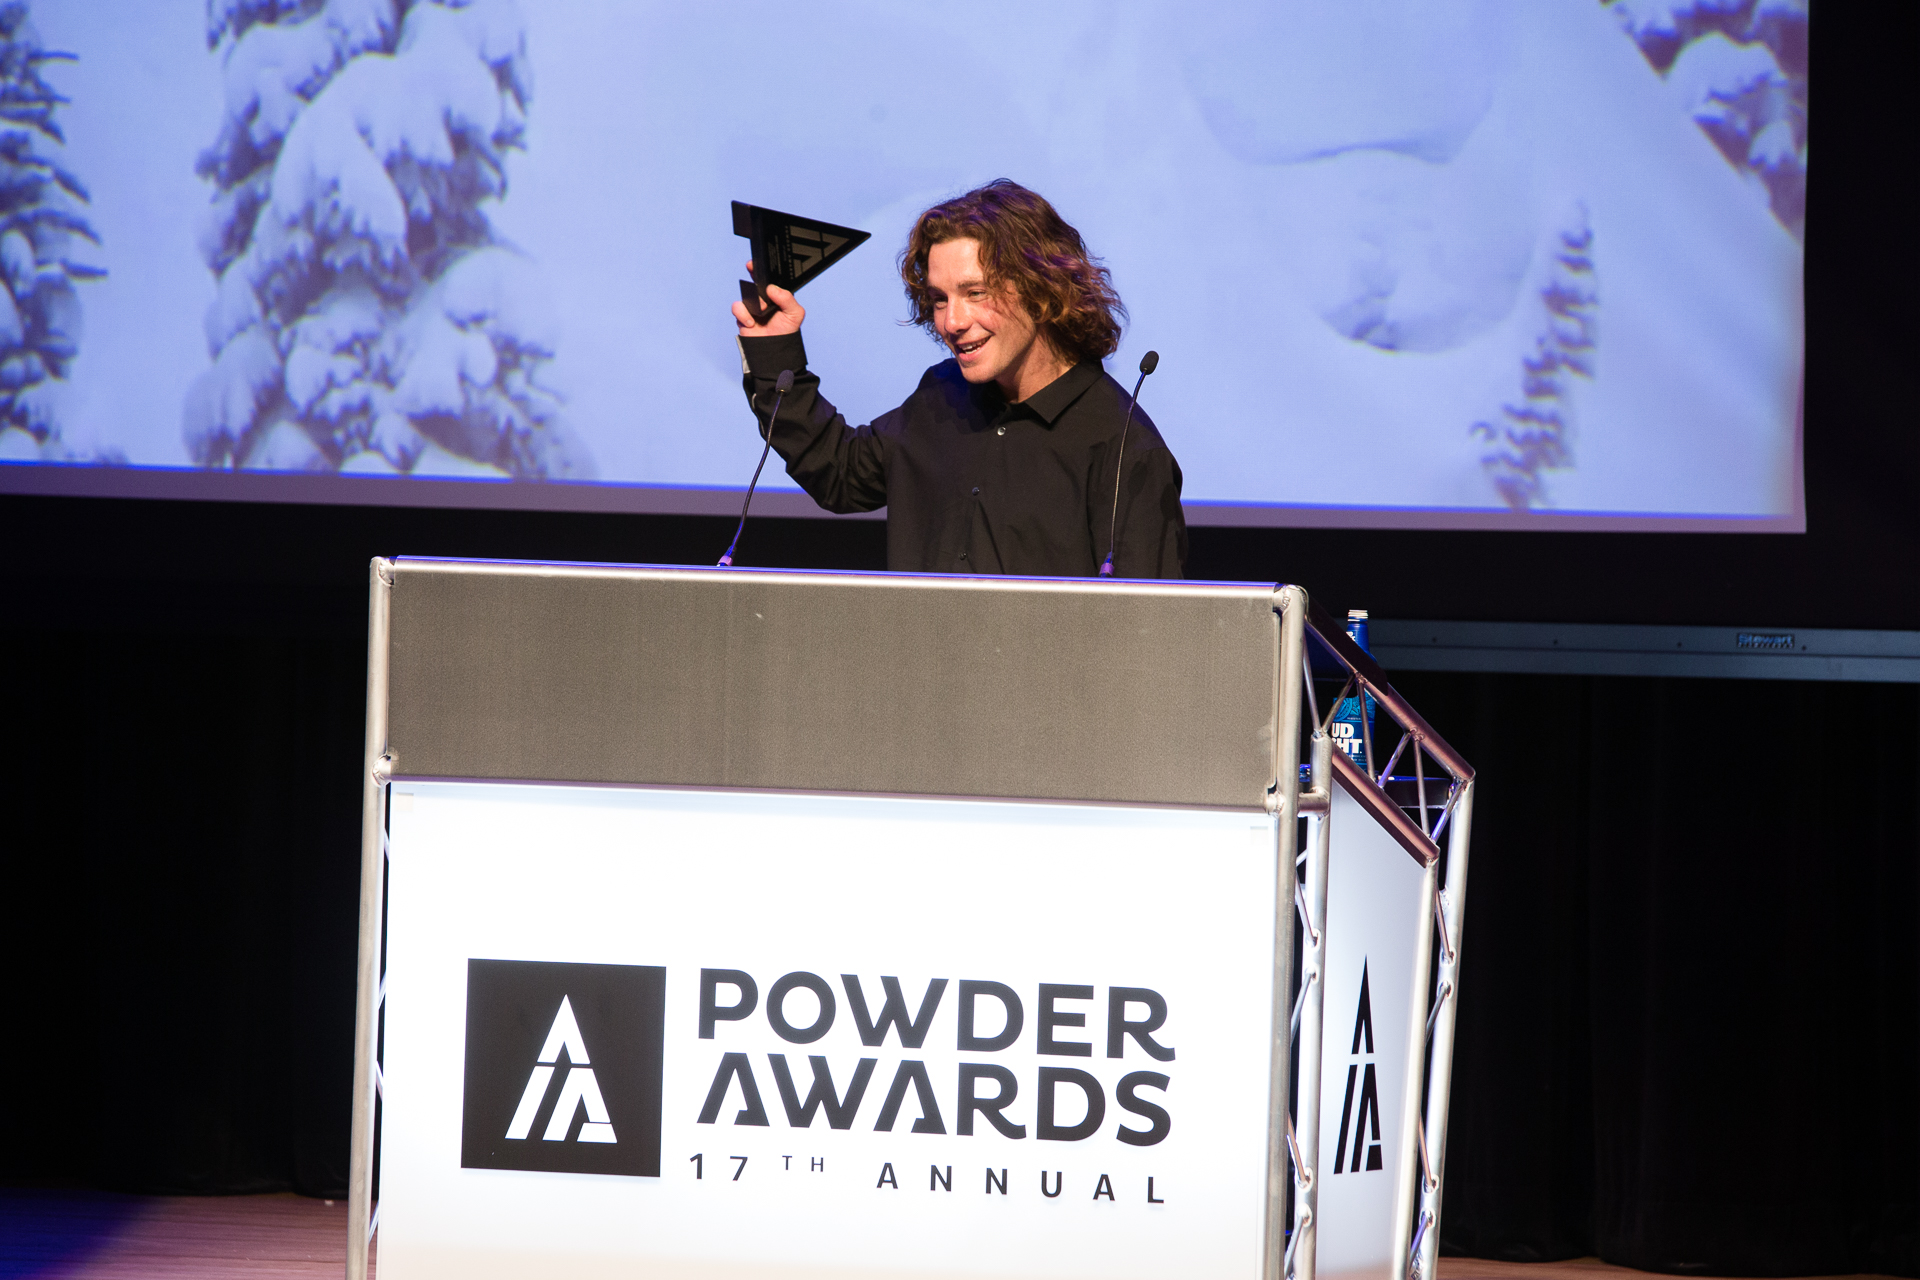 Powder Awards. Best Powder. Sammy Carlson. Photo: Liam Doran